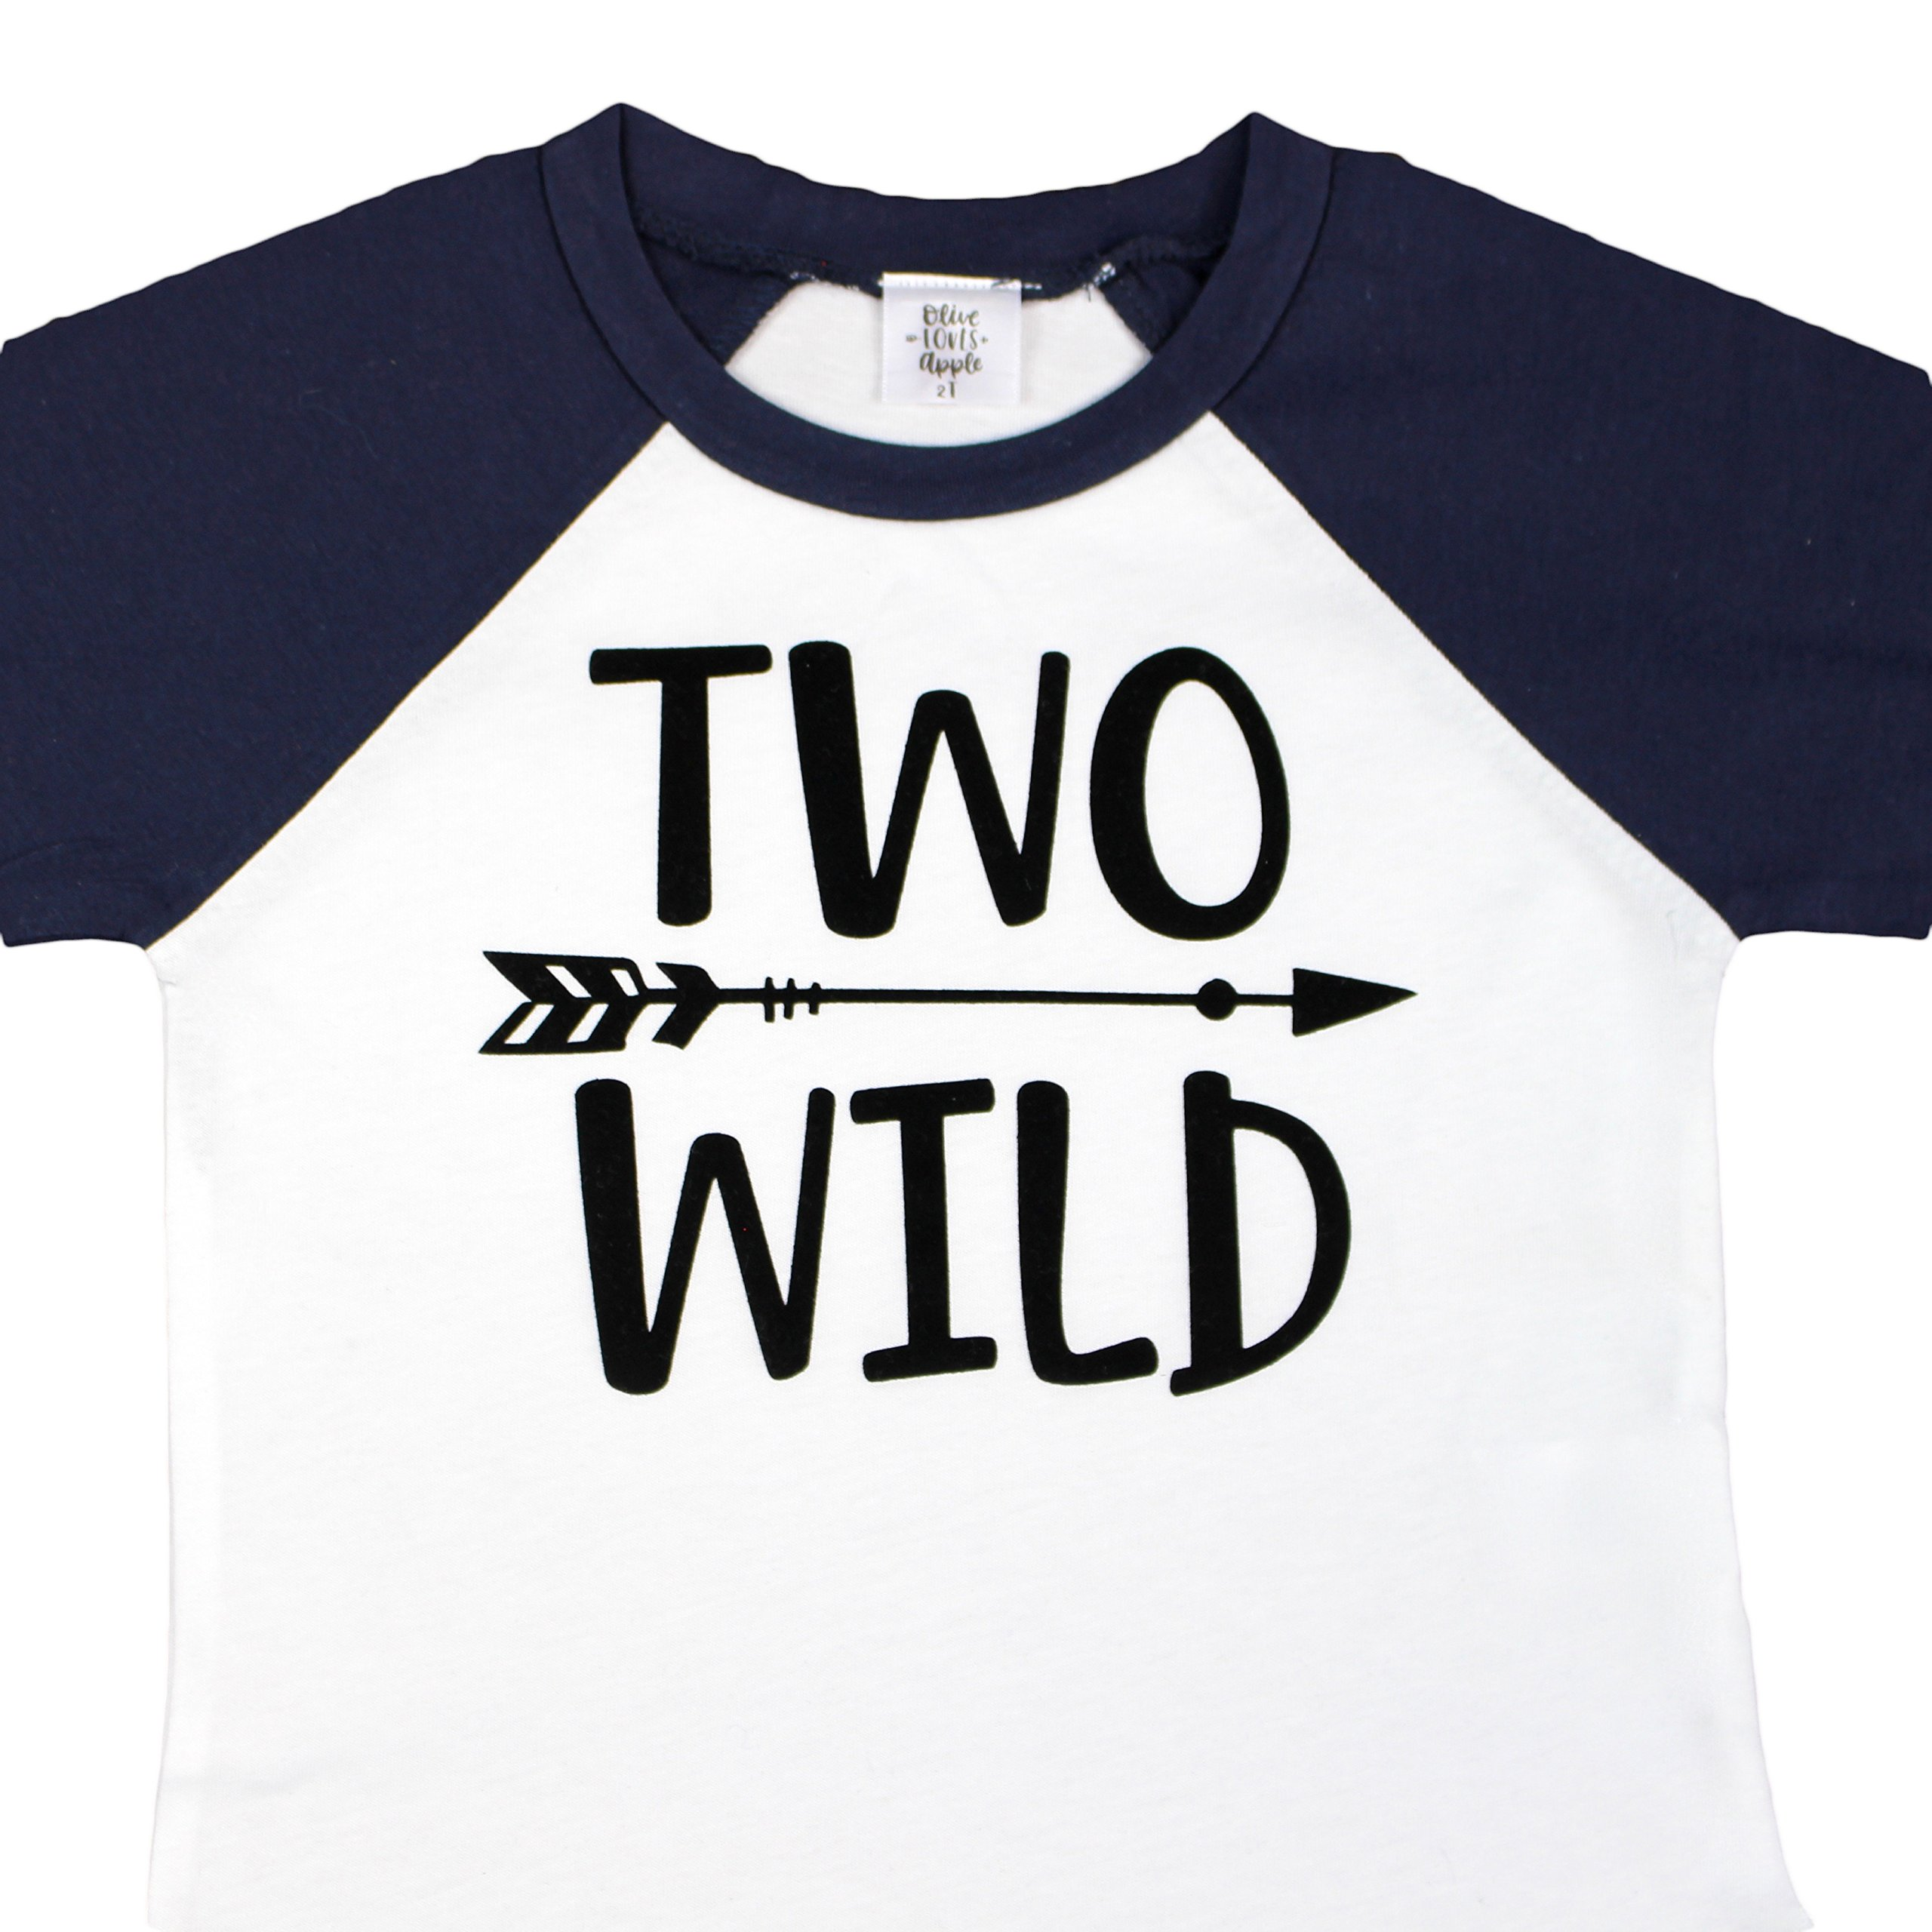 Olive Loves Apple Two Wild 2nd Birthday Shirt For Toddler Boys 2nd Birthday Shirt Boy 3/4 Sleeve